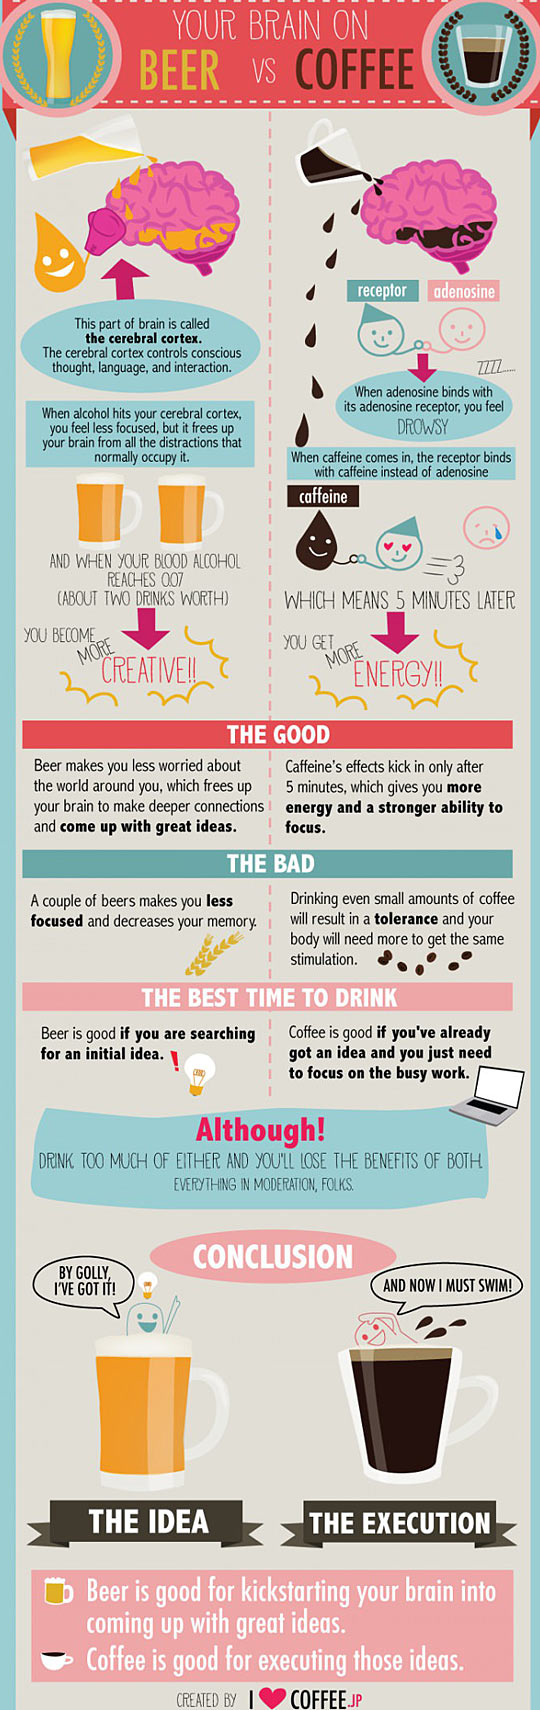 funny-beer-coffee-infographic